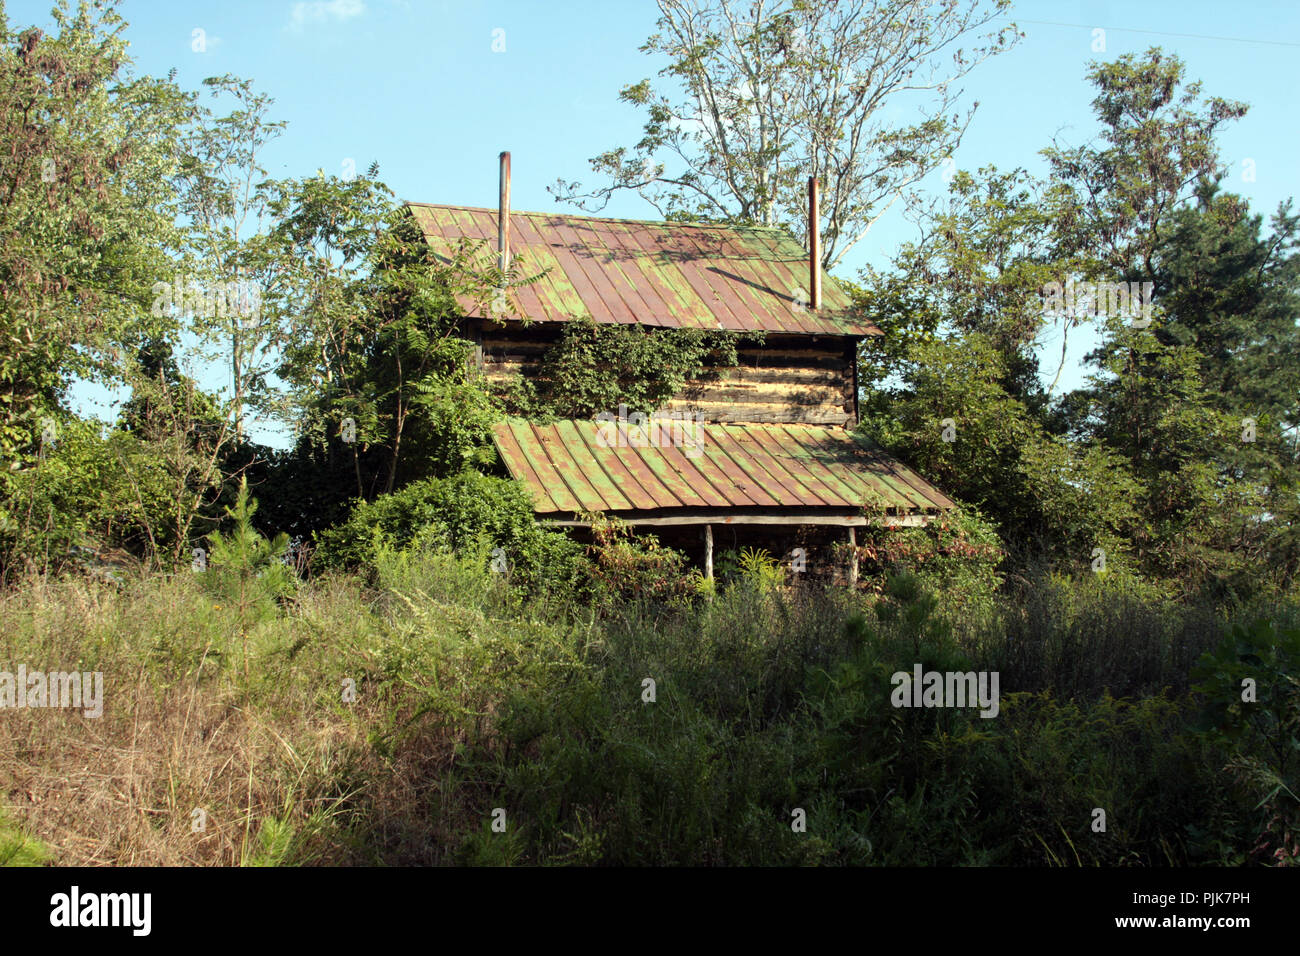 Desolating looking barn, abandoned and surrounded by vegetation, in Virginia's countryside - Stock Image